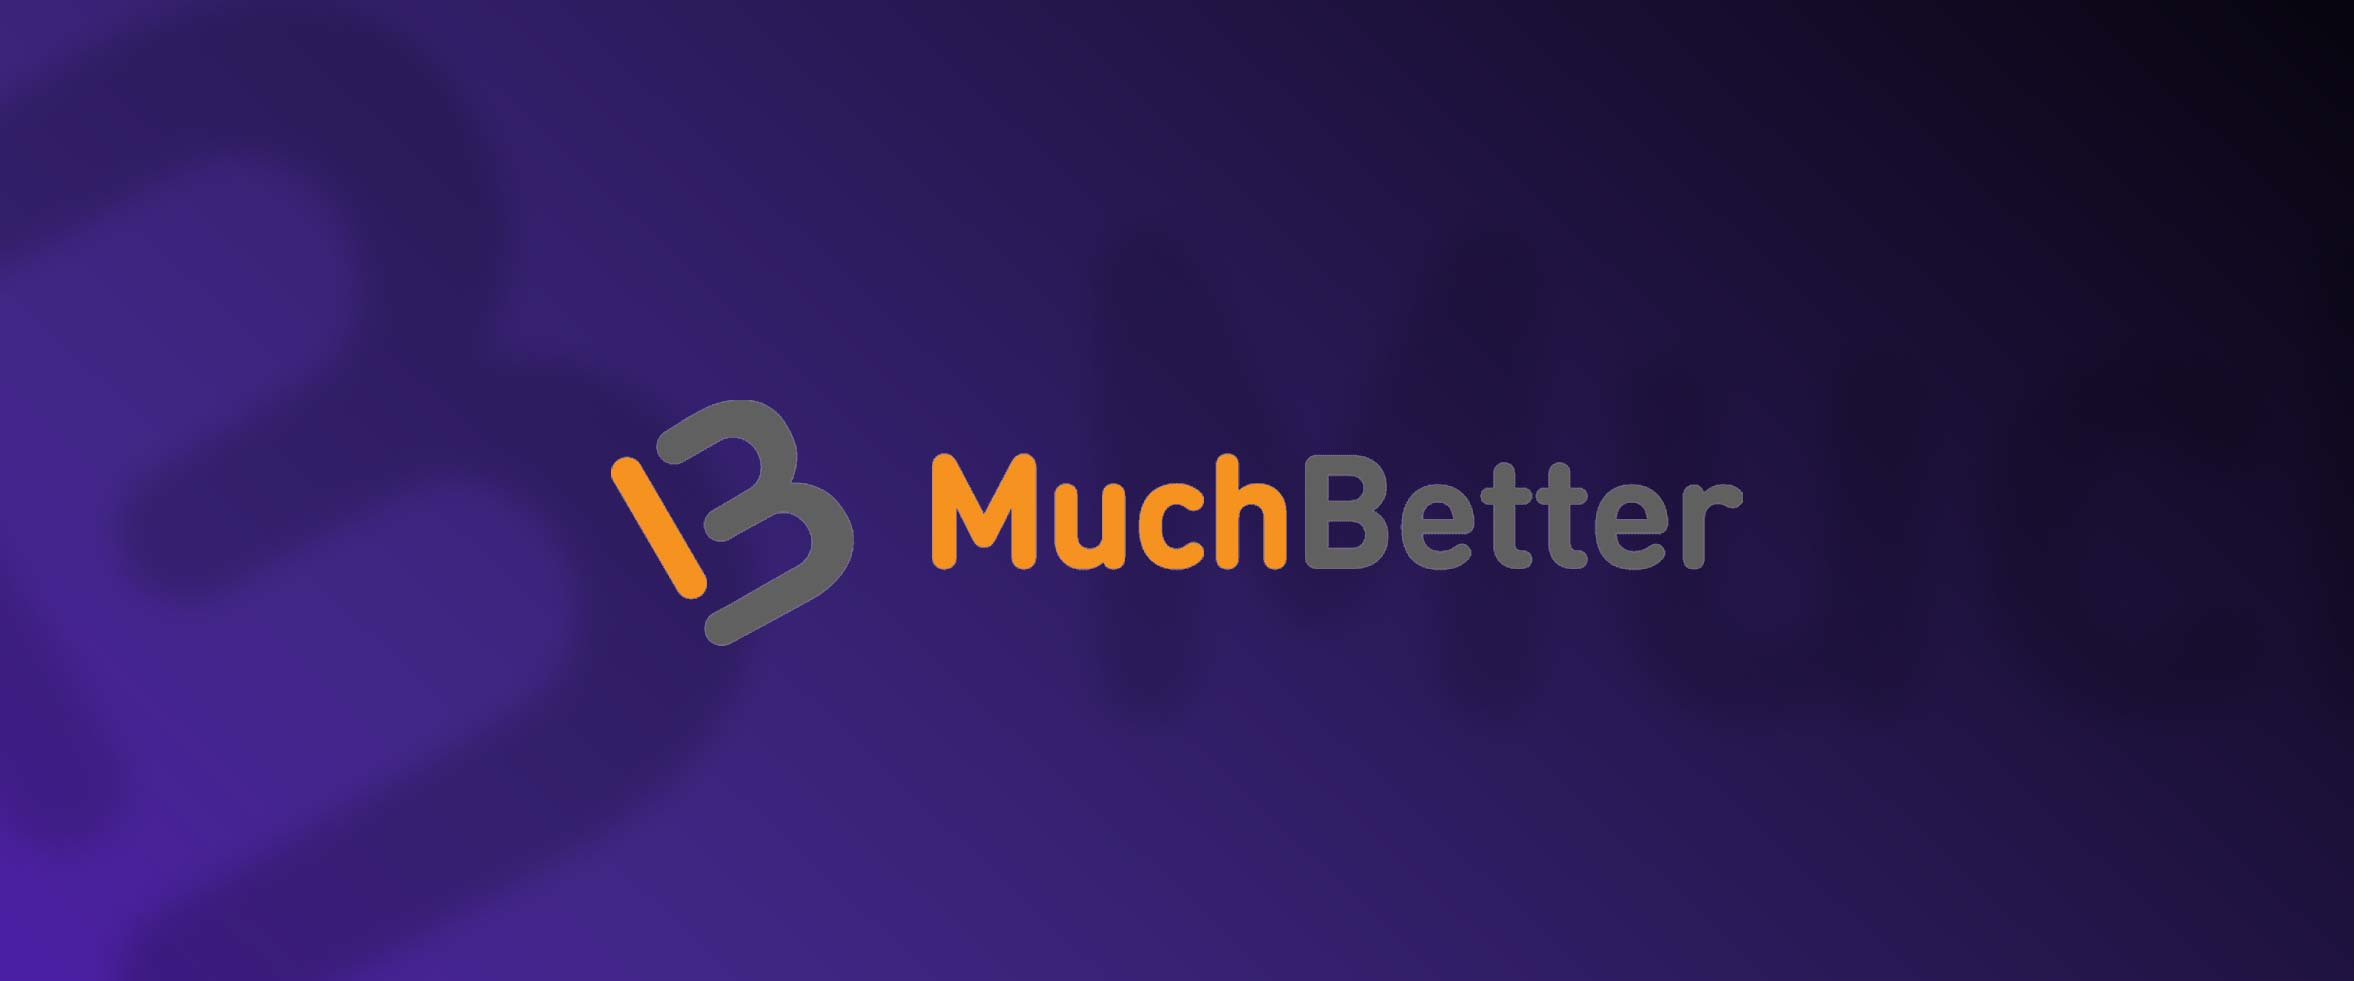 Wildz Offers the MuchBetter eWallet